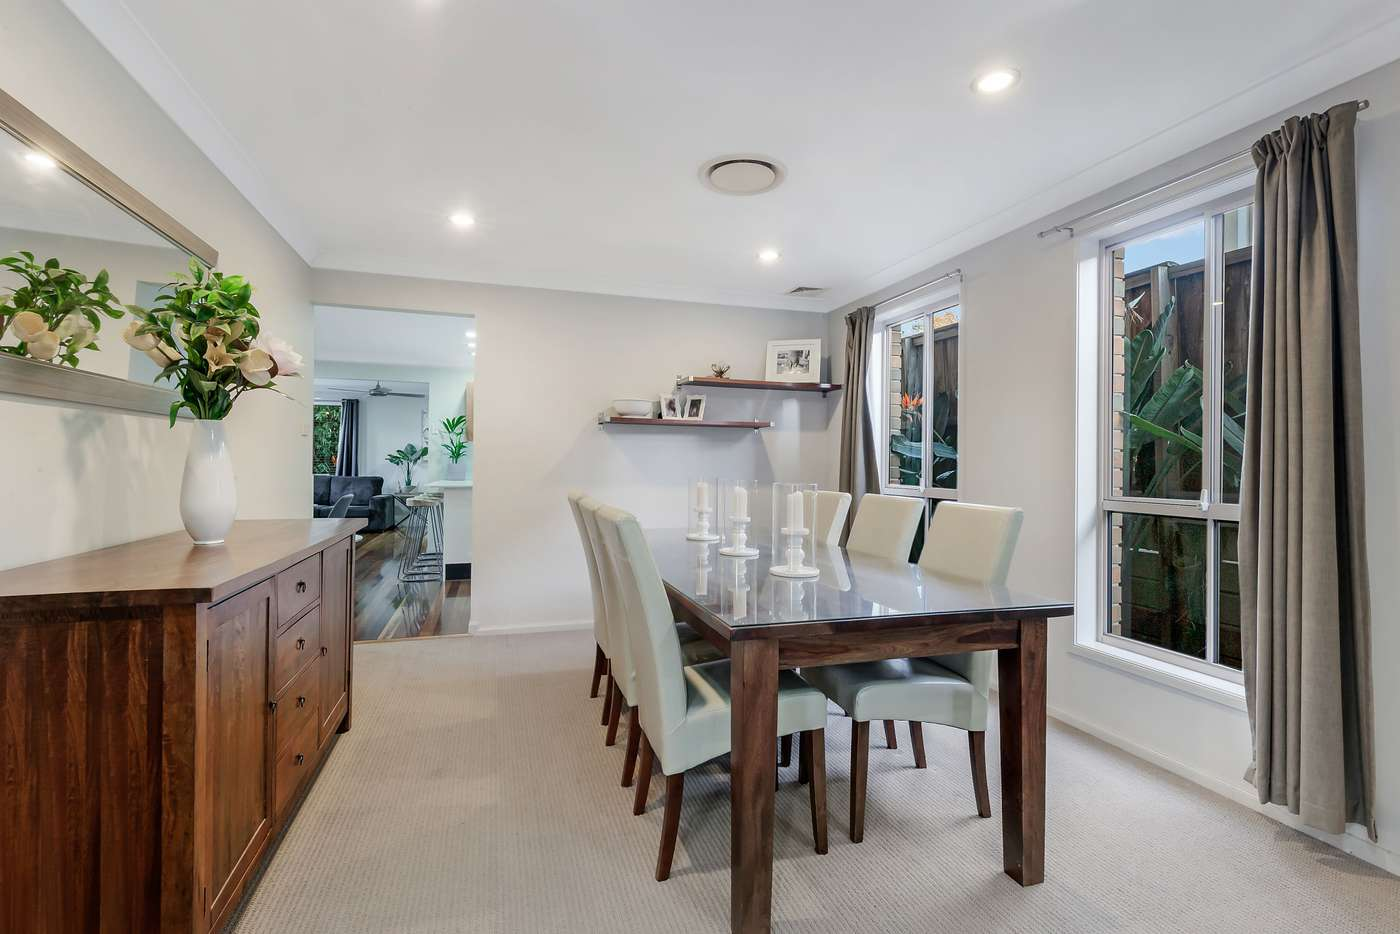 Fifth view of Homely house listing, 18 Islington Road, Stanhope Gardens NSW 2768